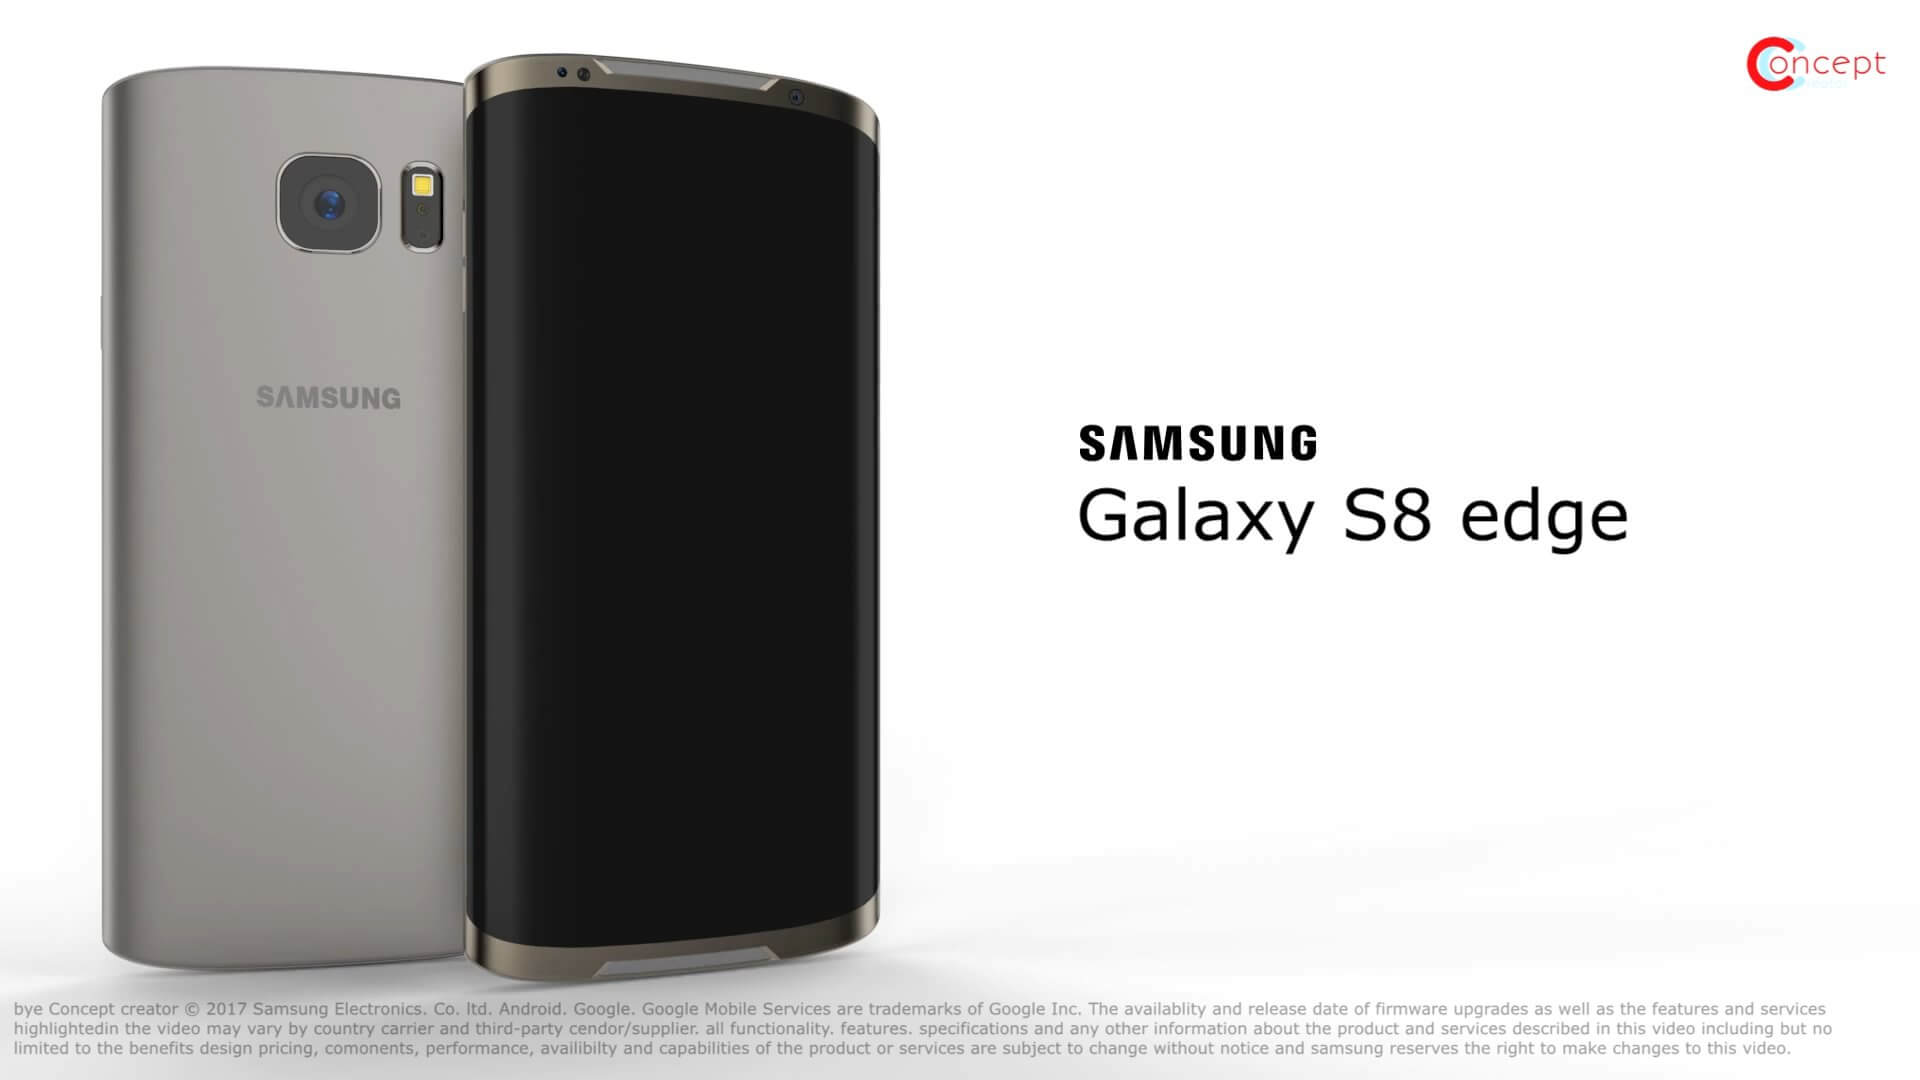 Samsung Galaxy S8 edge Android Smartphone